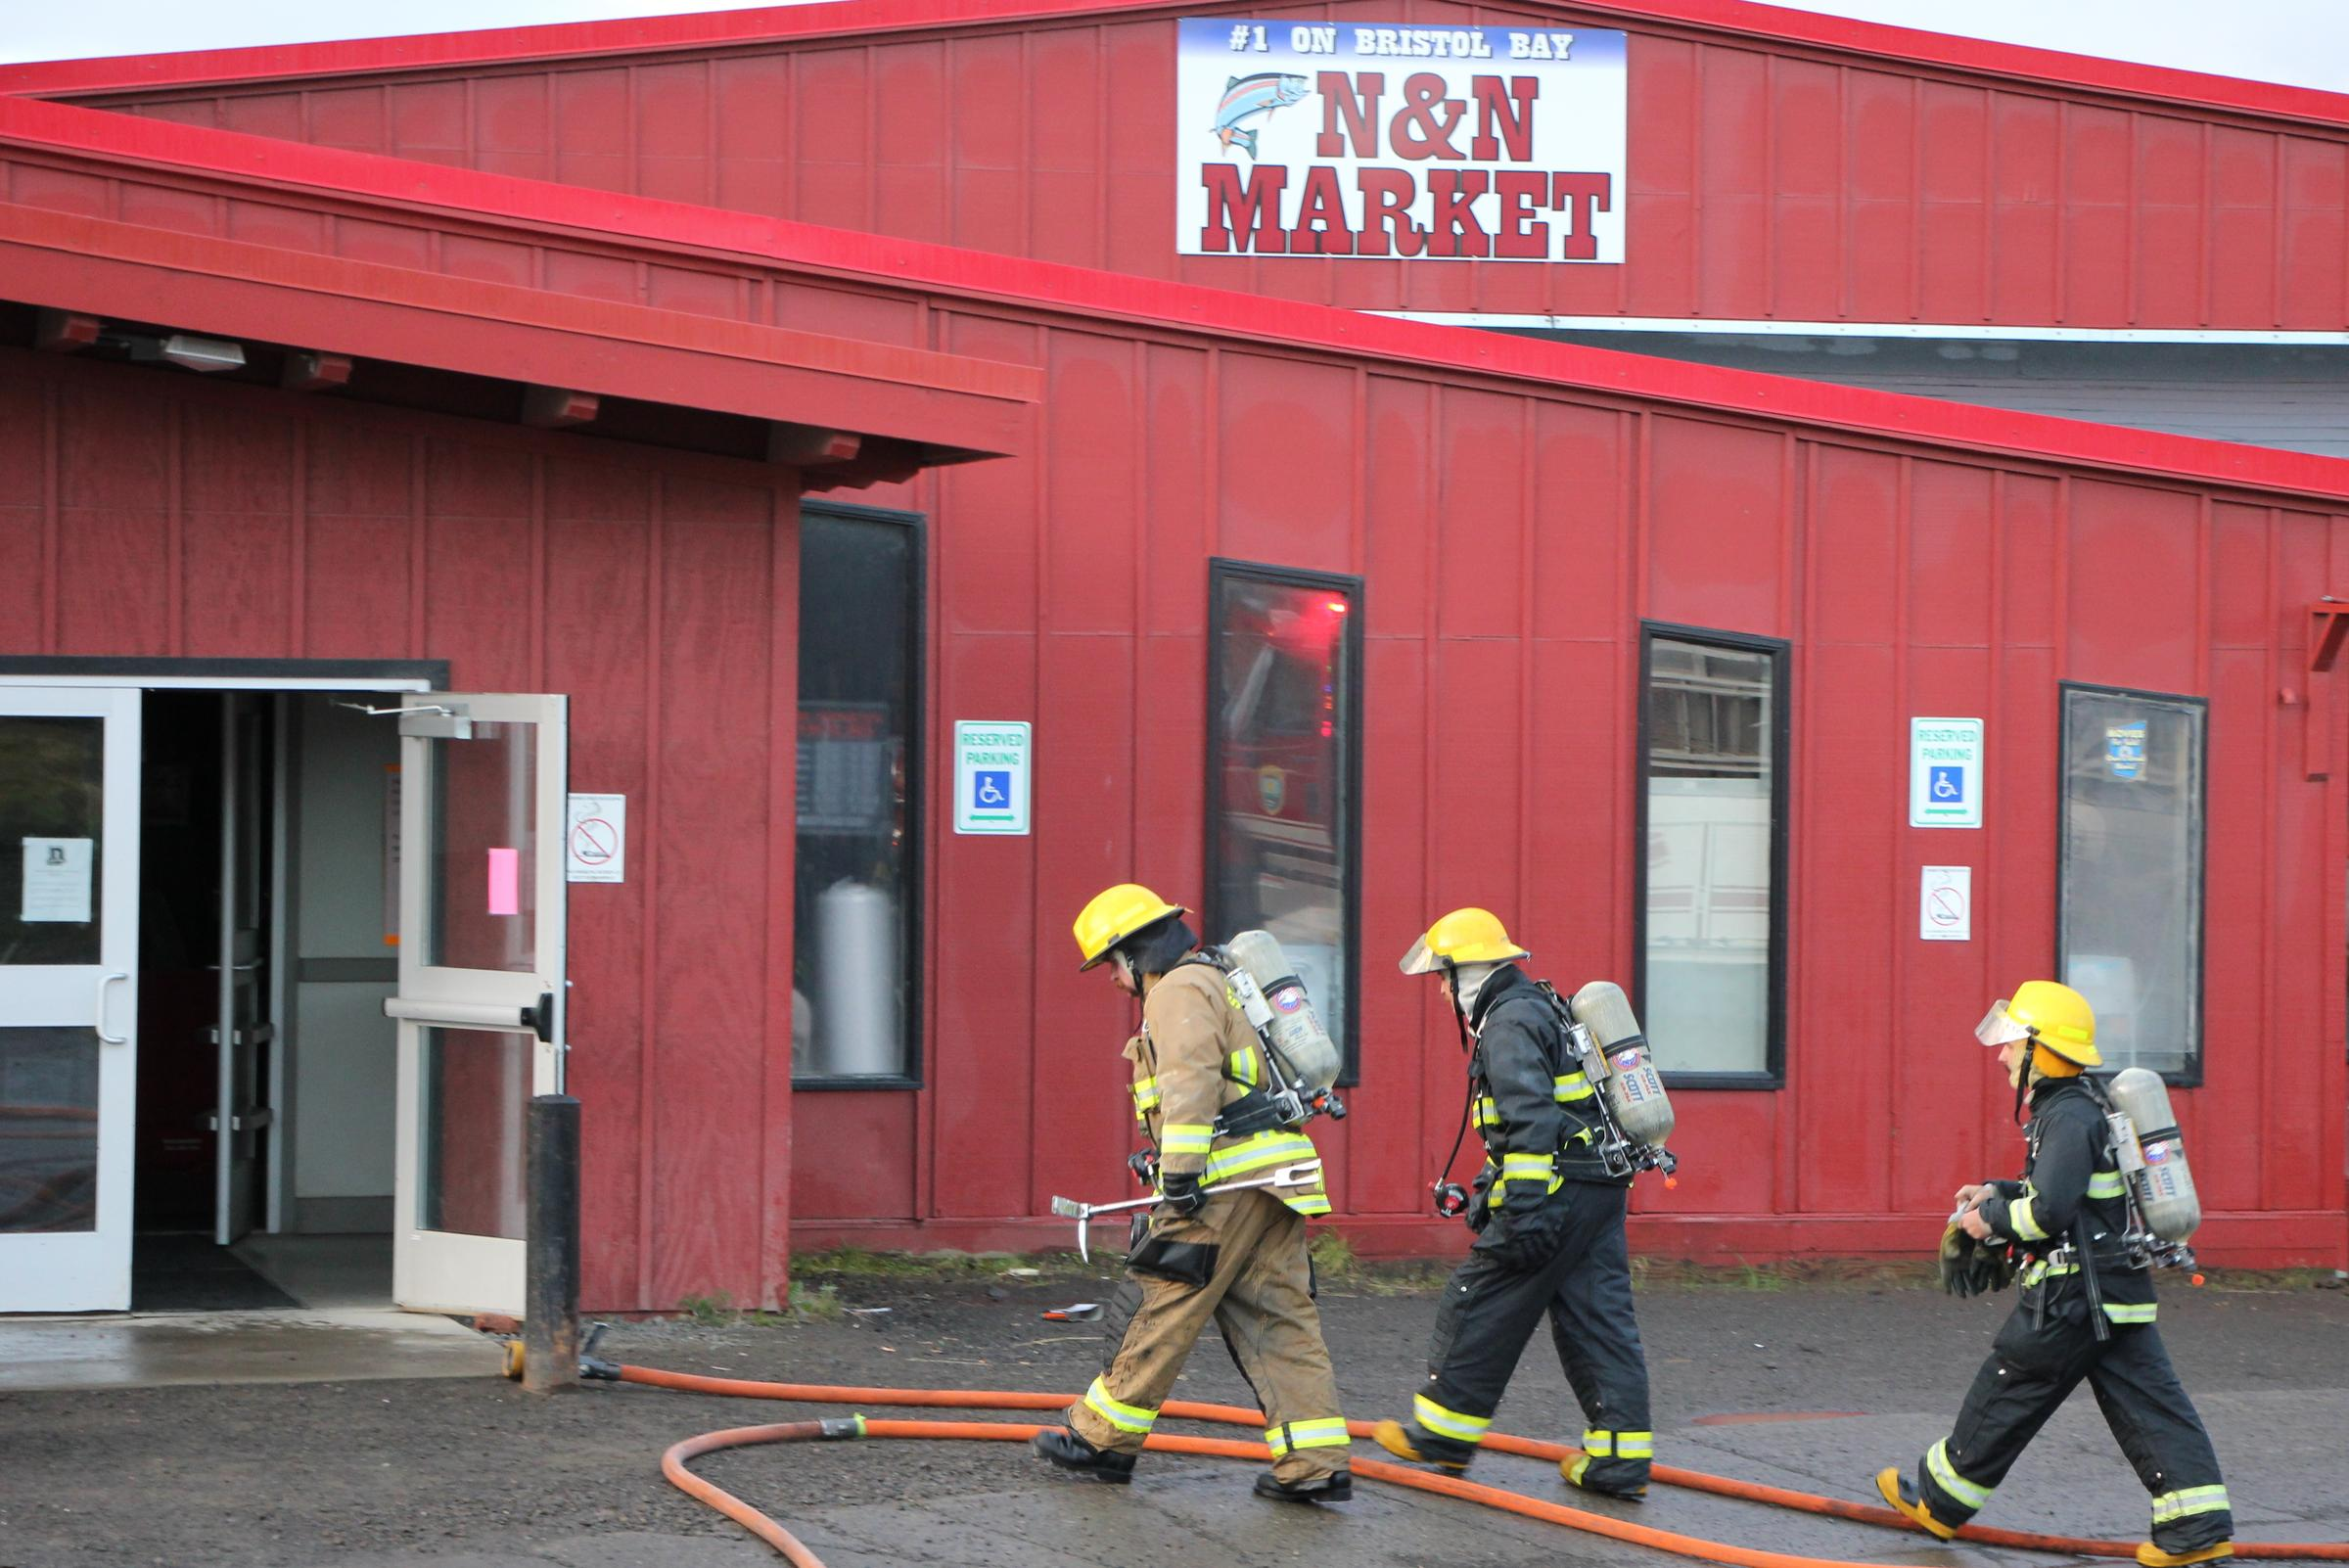 arson suspected in sunday morning market fire in dillingham